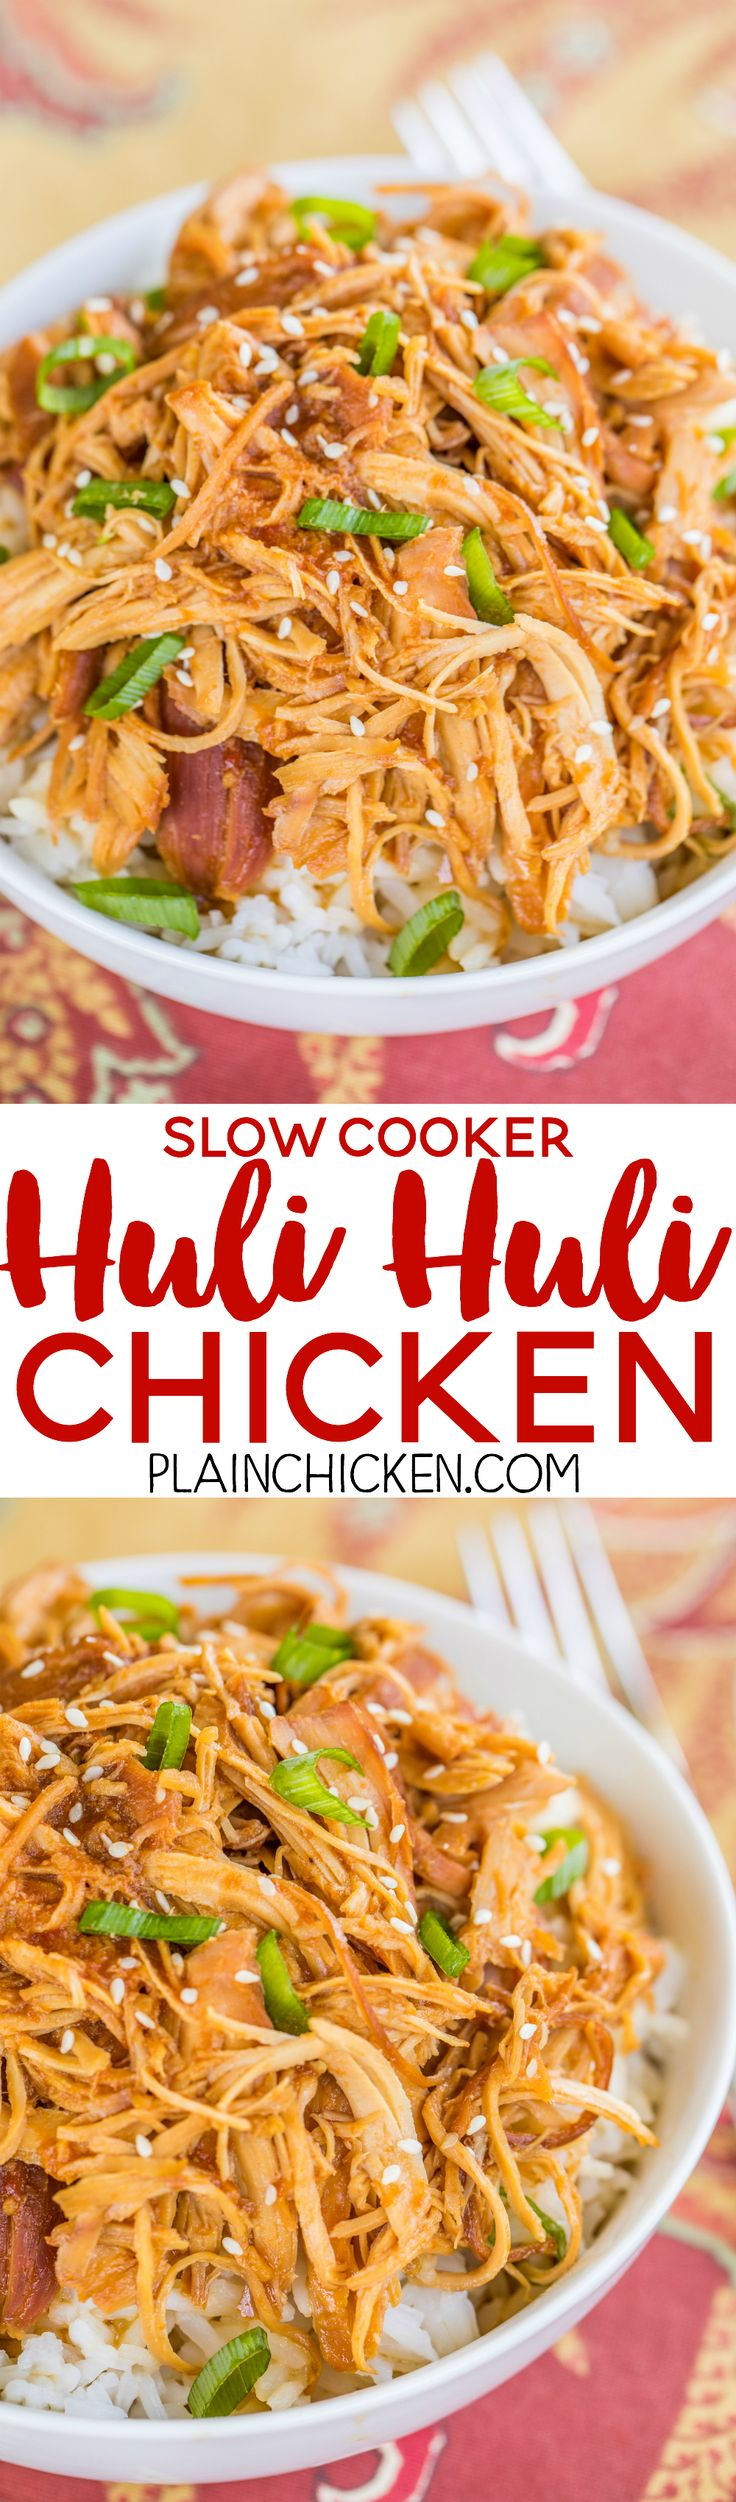 Slow Cooker Huli Huli Chicken - DANGEROUSLY good!!! Chicken breast slow cooked in brown sugar, soy sauce, ketchup, sherry, ginger, and garlic. We ate this twice in one week. It was seriously delicious!! Can use chicken thighs instead of breasts. Serve over rice, potatoes or noodles. Also great on top of a salad!